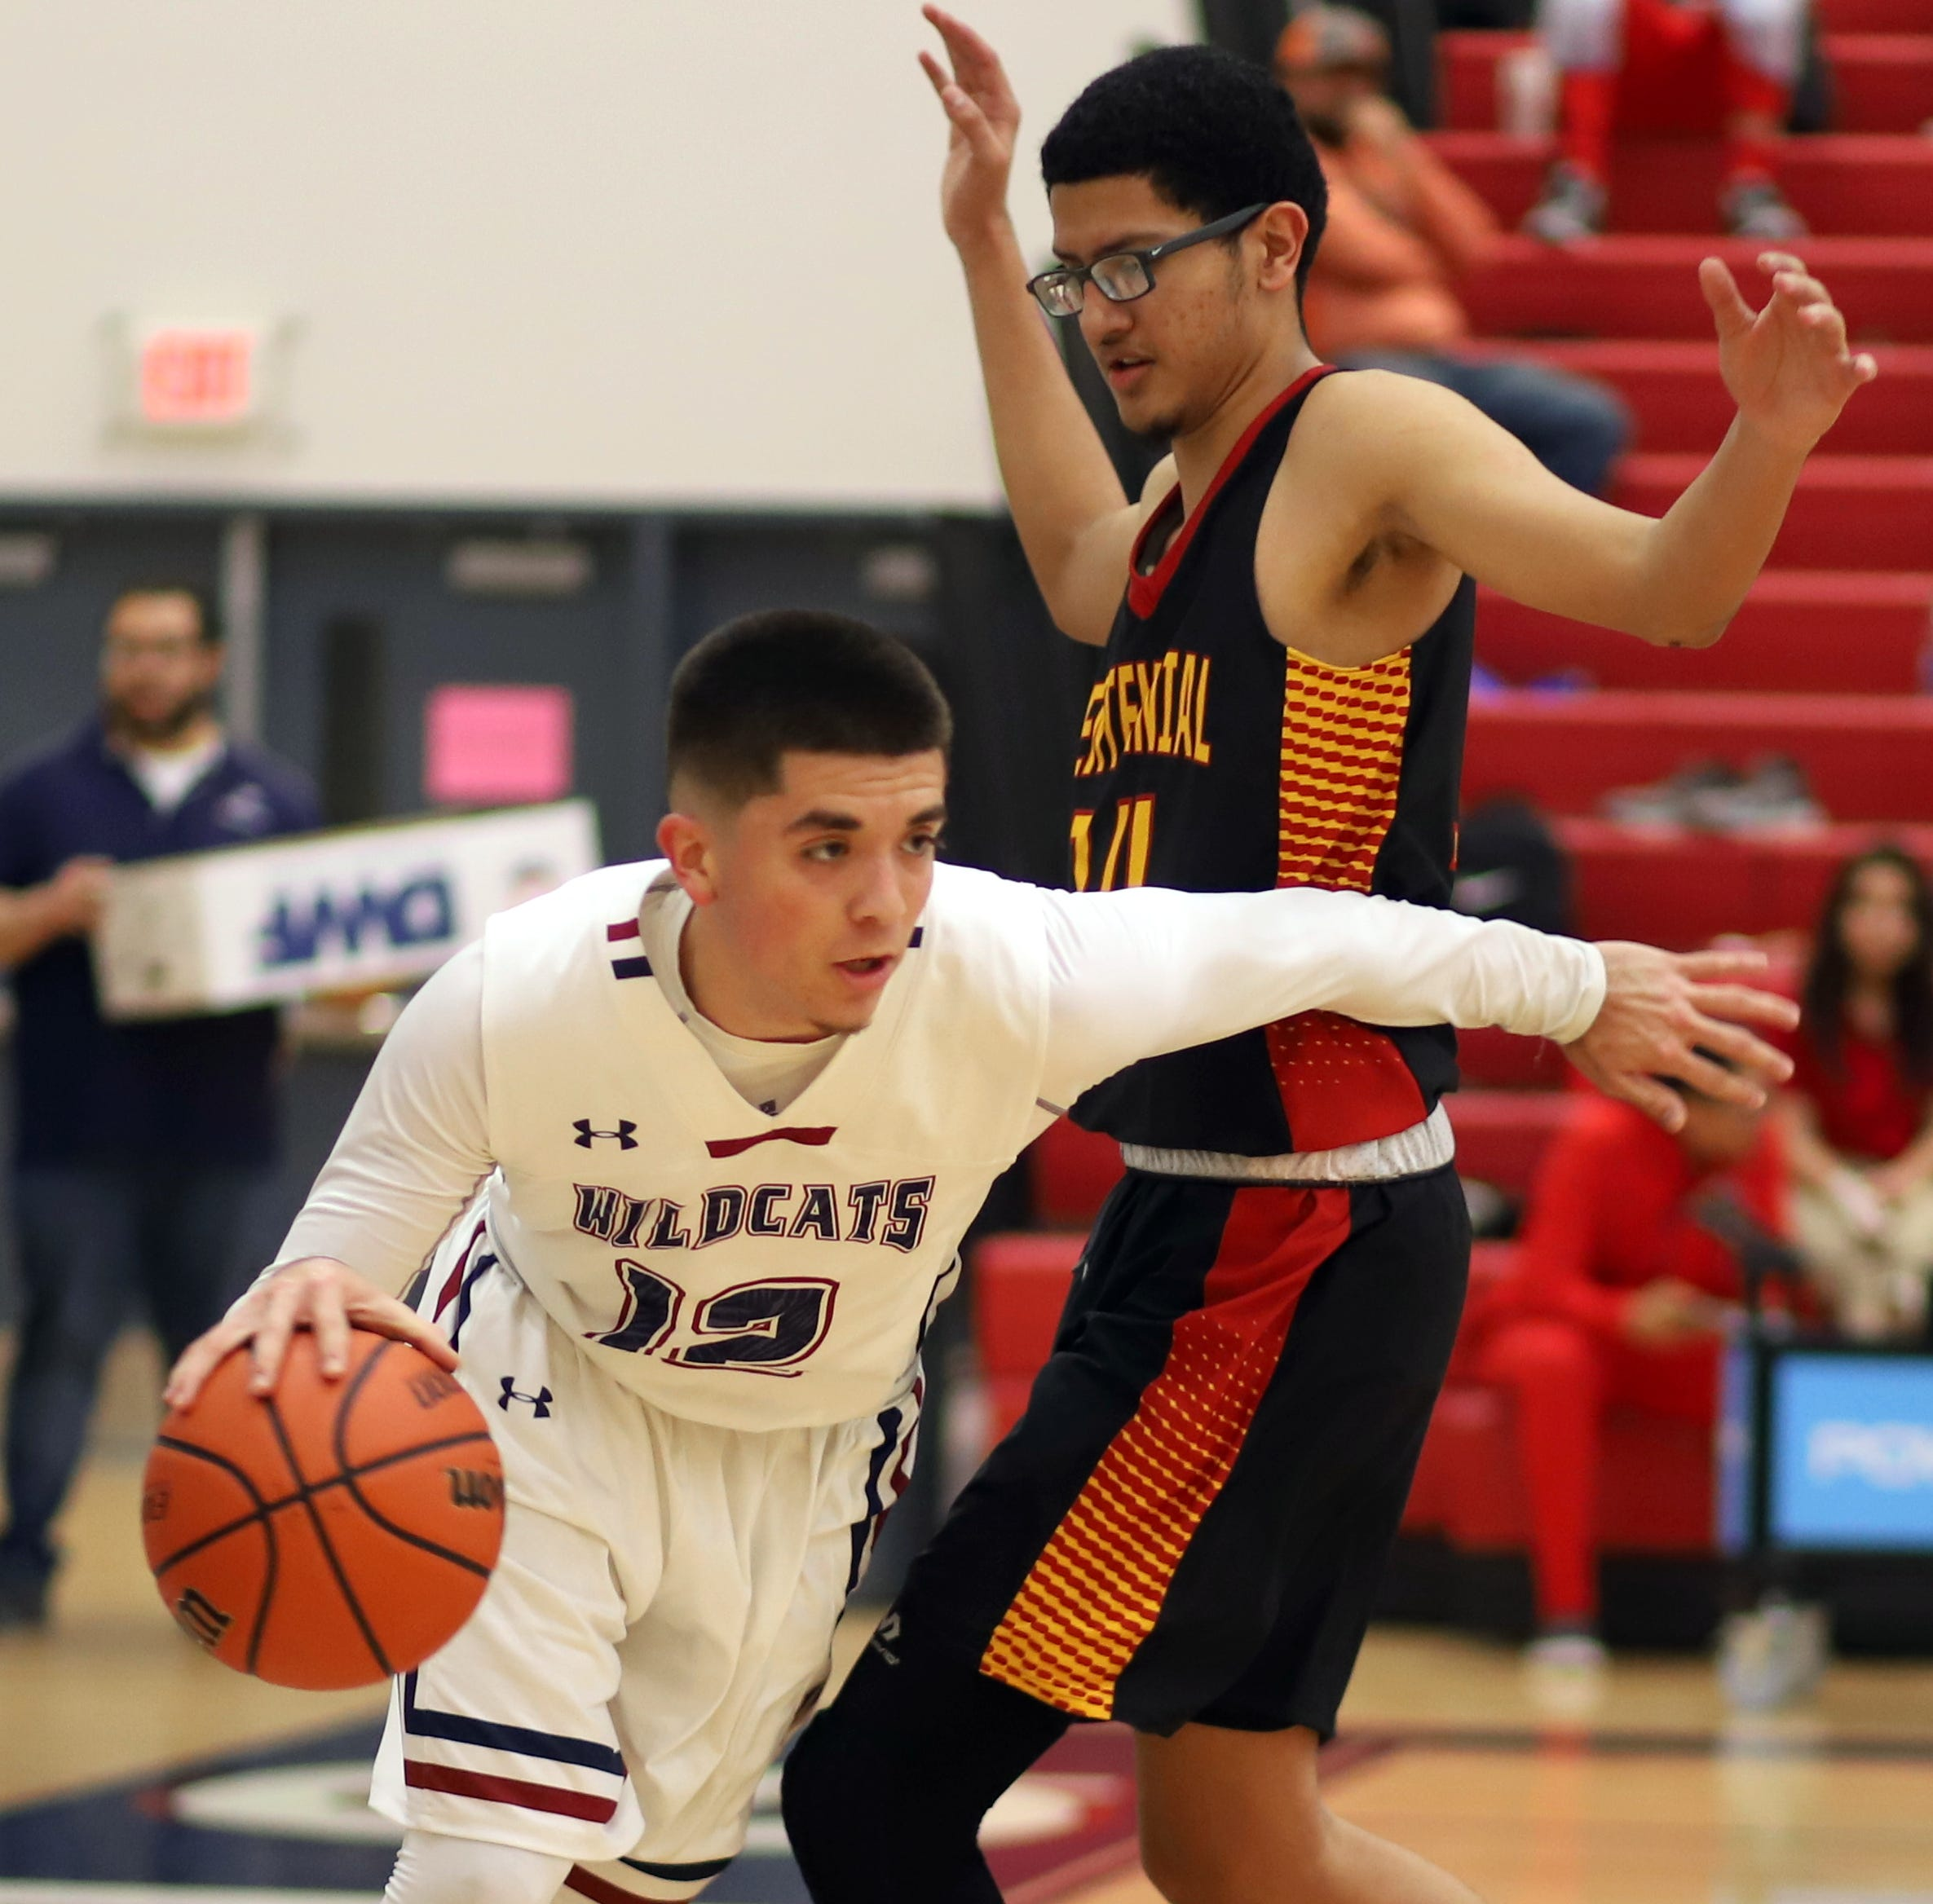 Centennial High Hawks rout Deming High Wildcats in District 3-6A boys' basketball